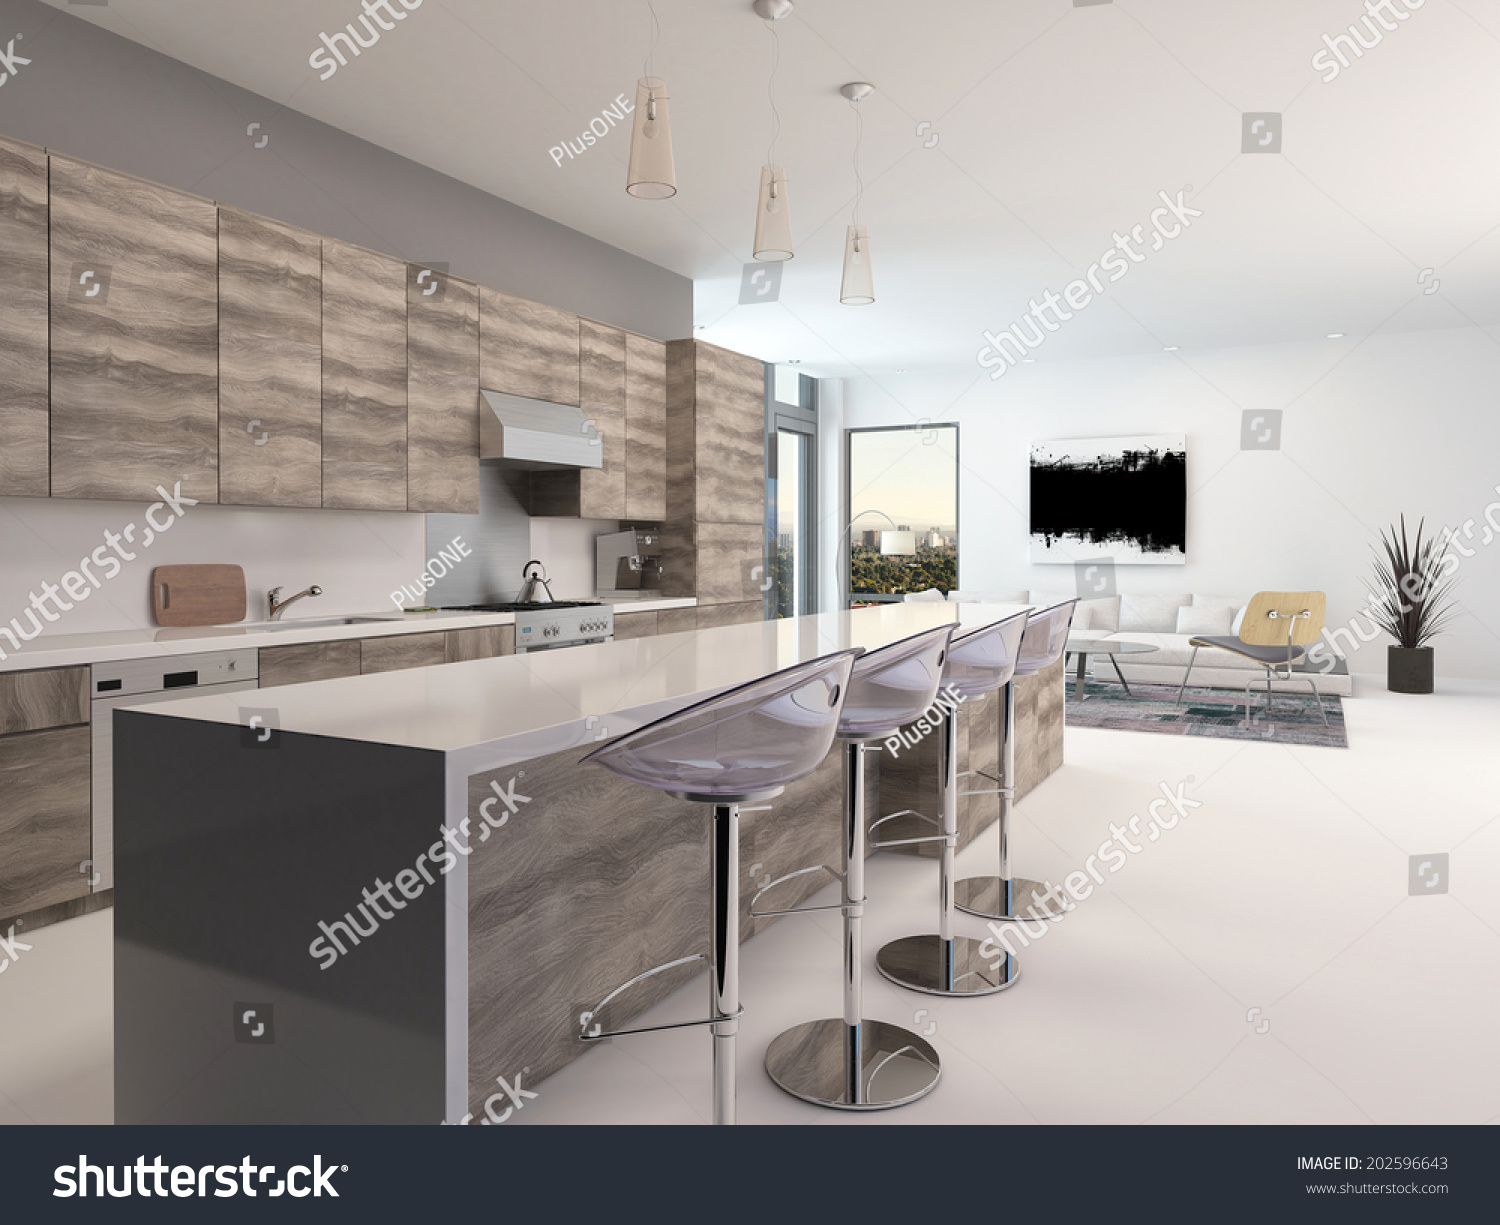 Rustic Counter Stools Kitchen Rustic Style Wooden Openplan Kitchen Interior Stock Illustration